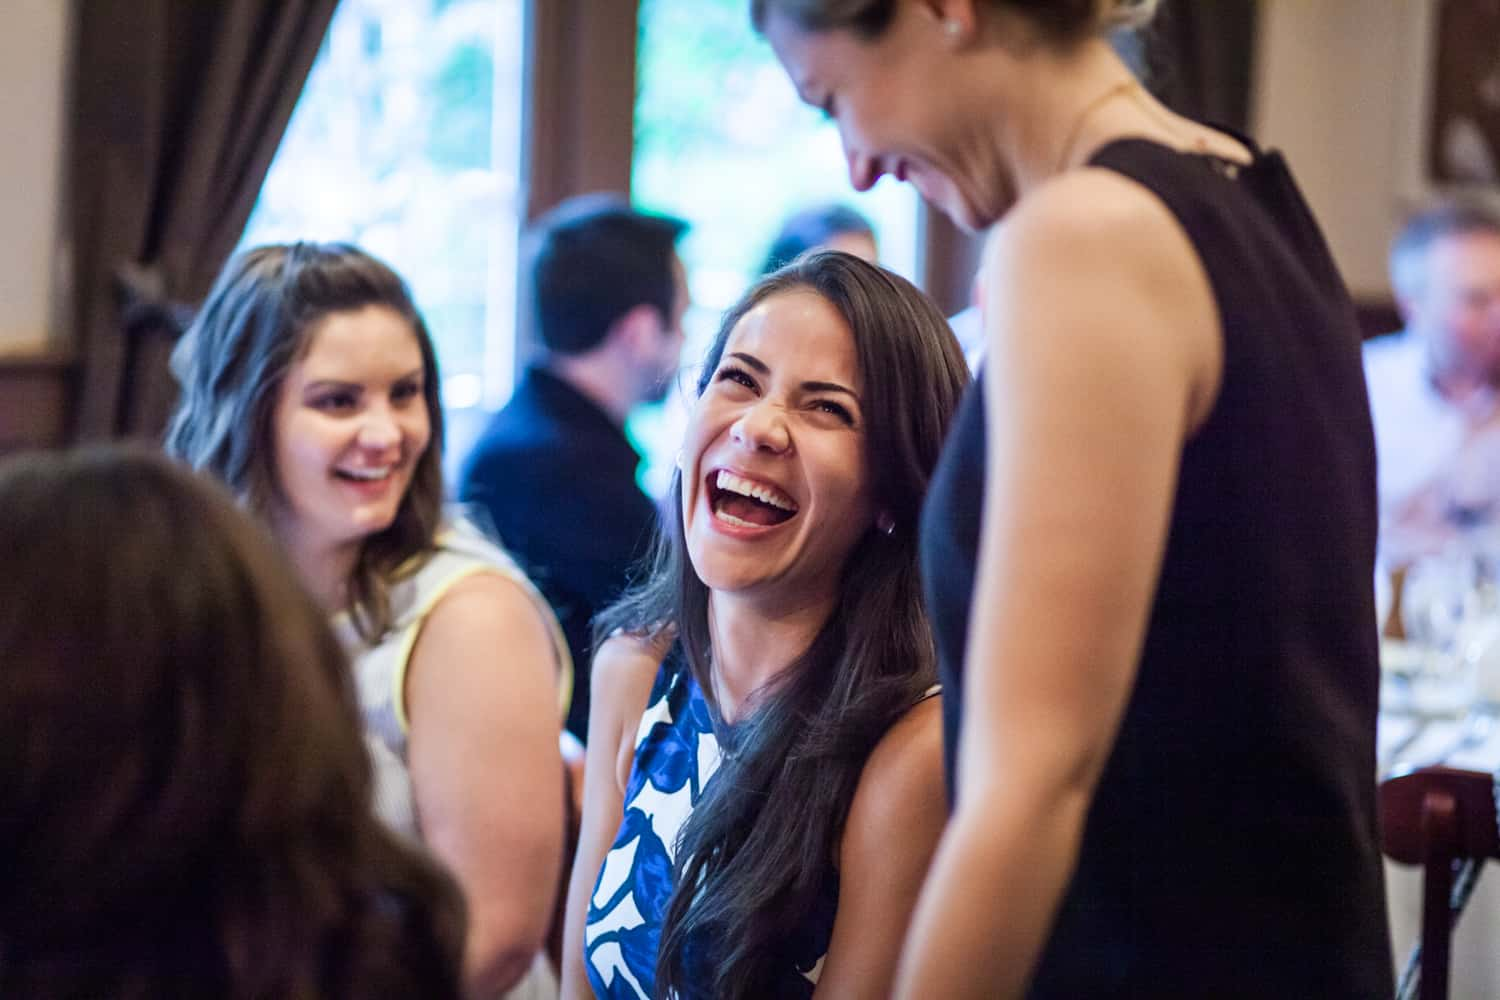 Female guest laughing with other guests at a rehearsal dinner